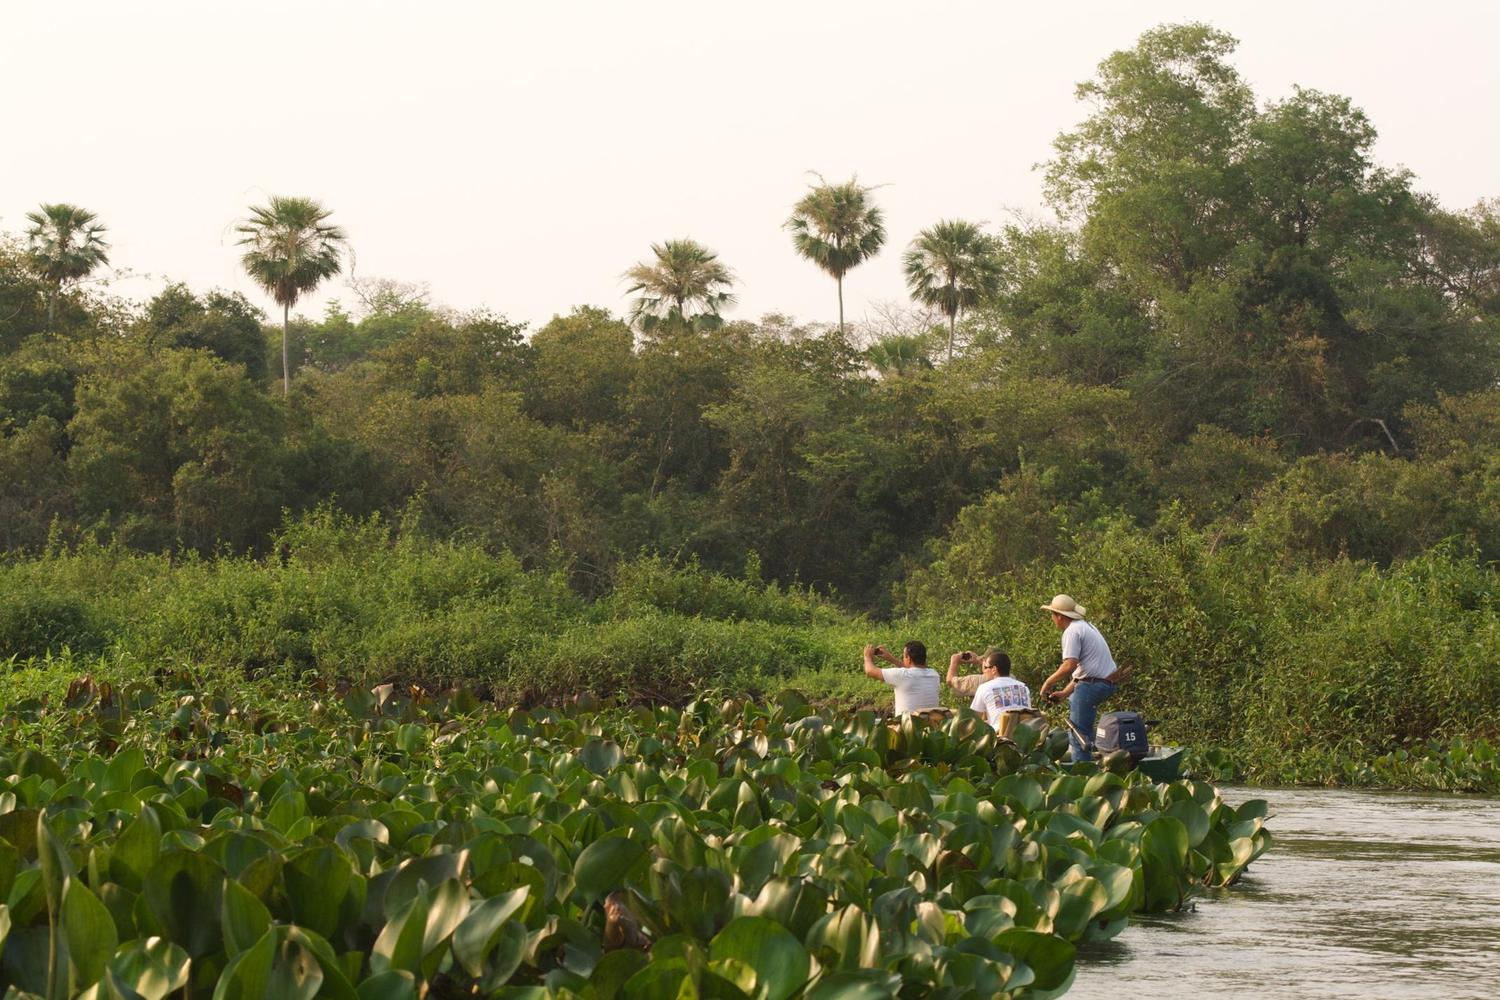 Exploring the waterways of Brazil's Pantanal